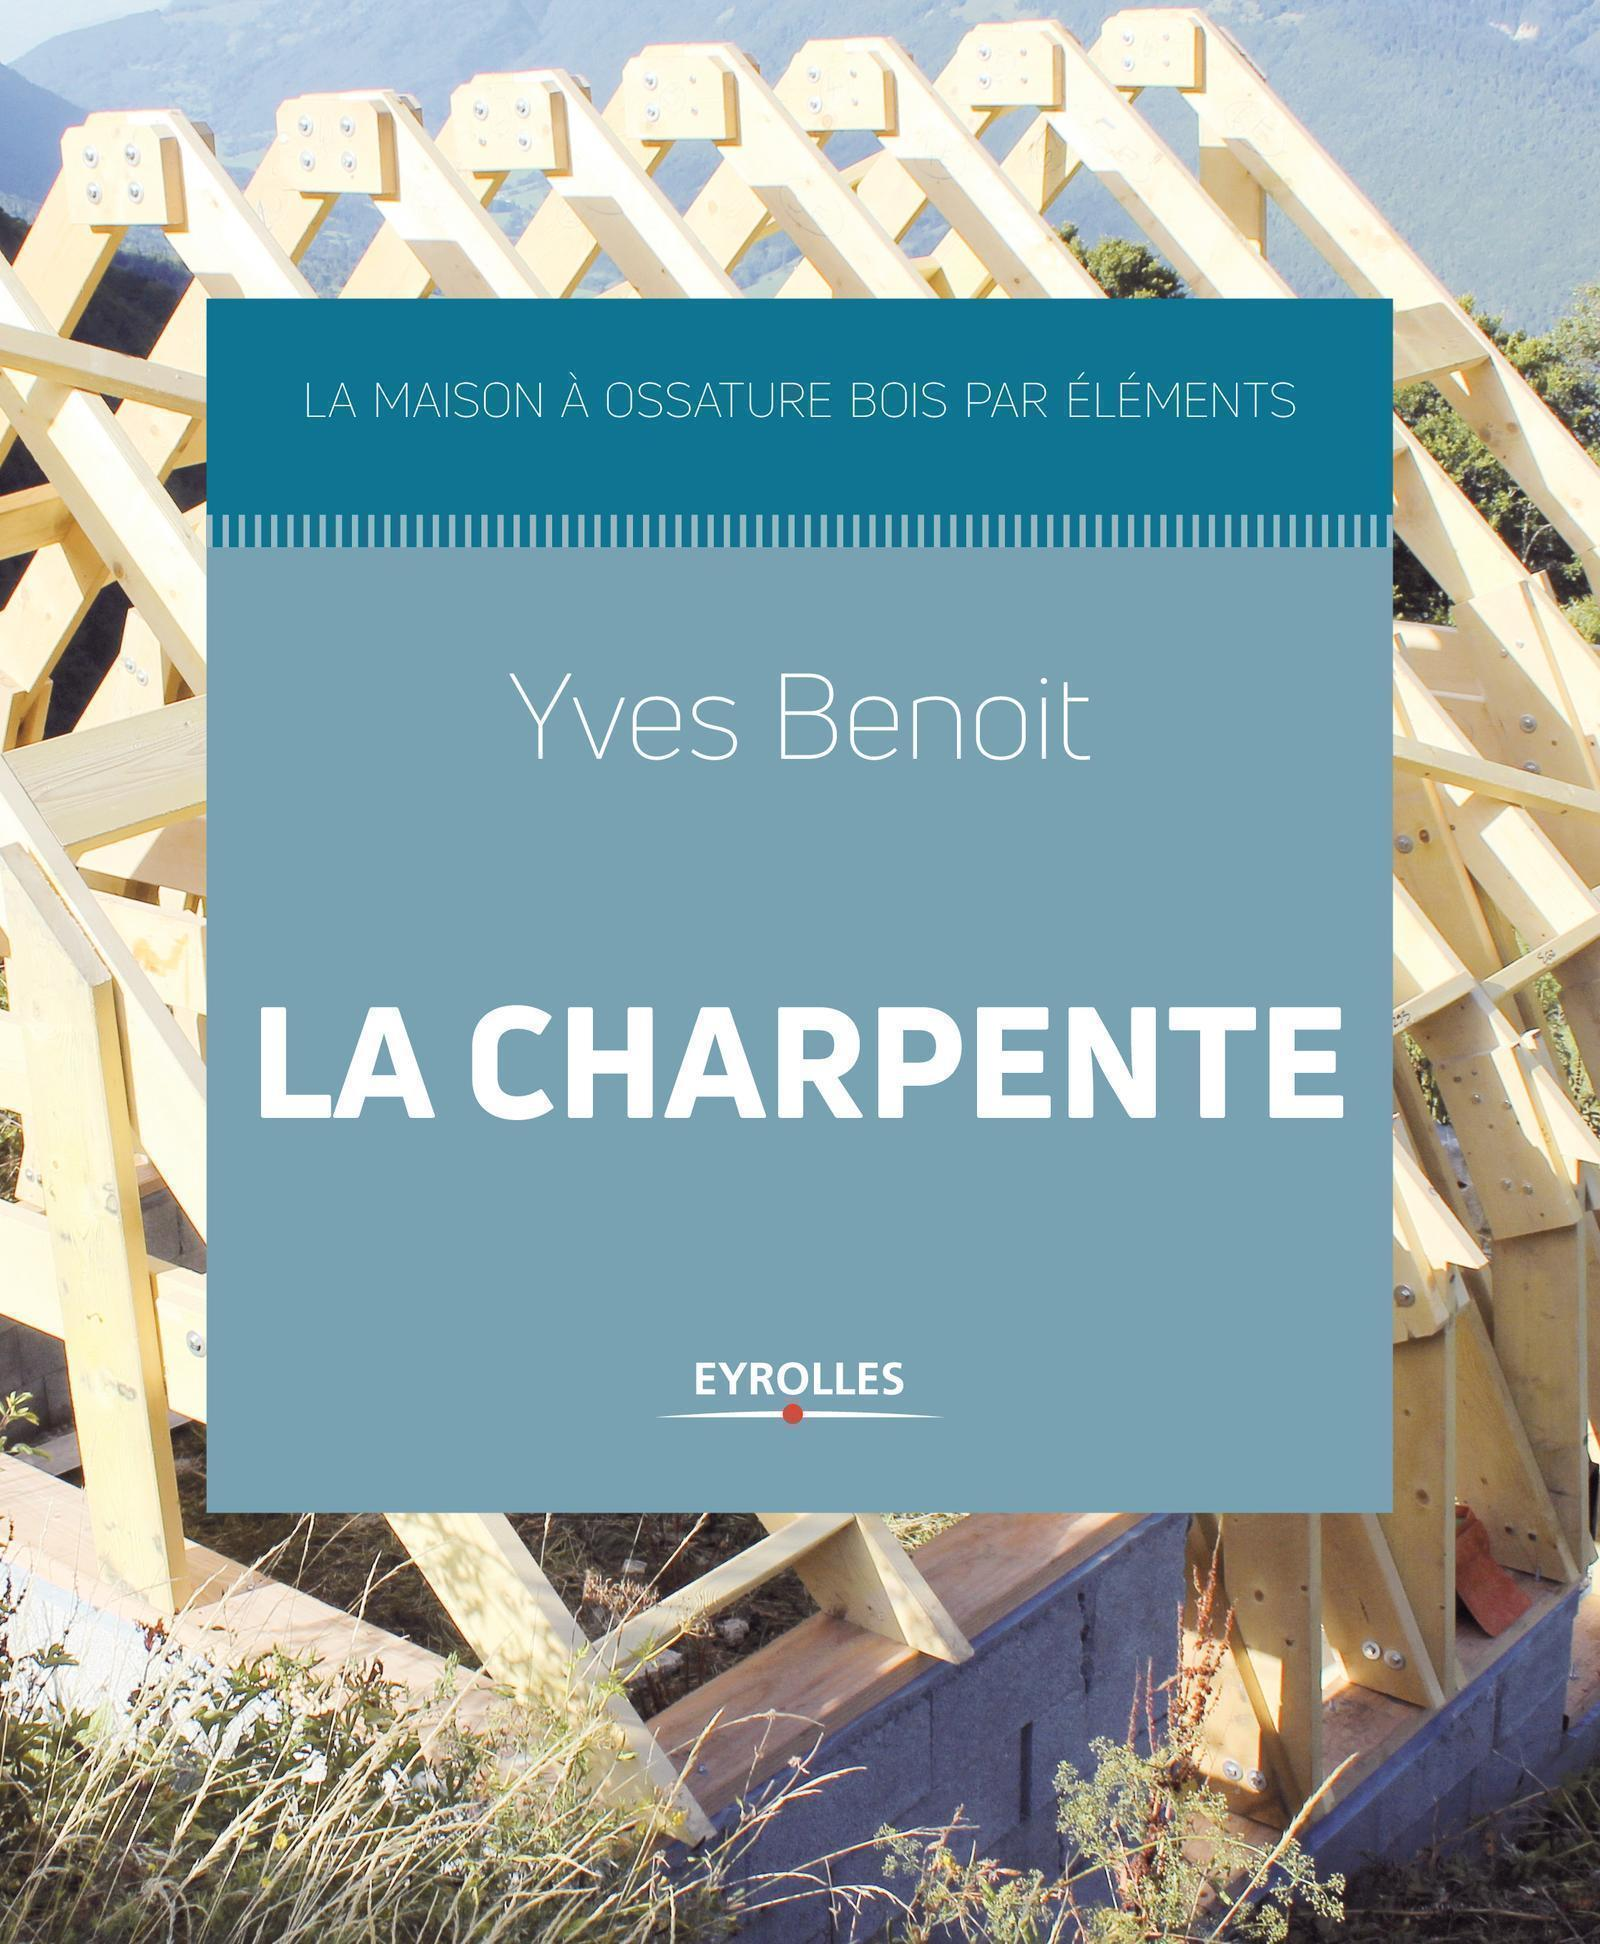 LA CHARPENTE - LA MAISON A OSSATURE BOIS PAR ELEMENTS